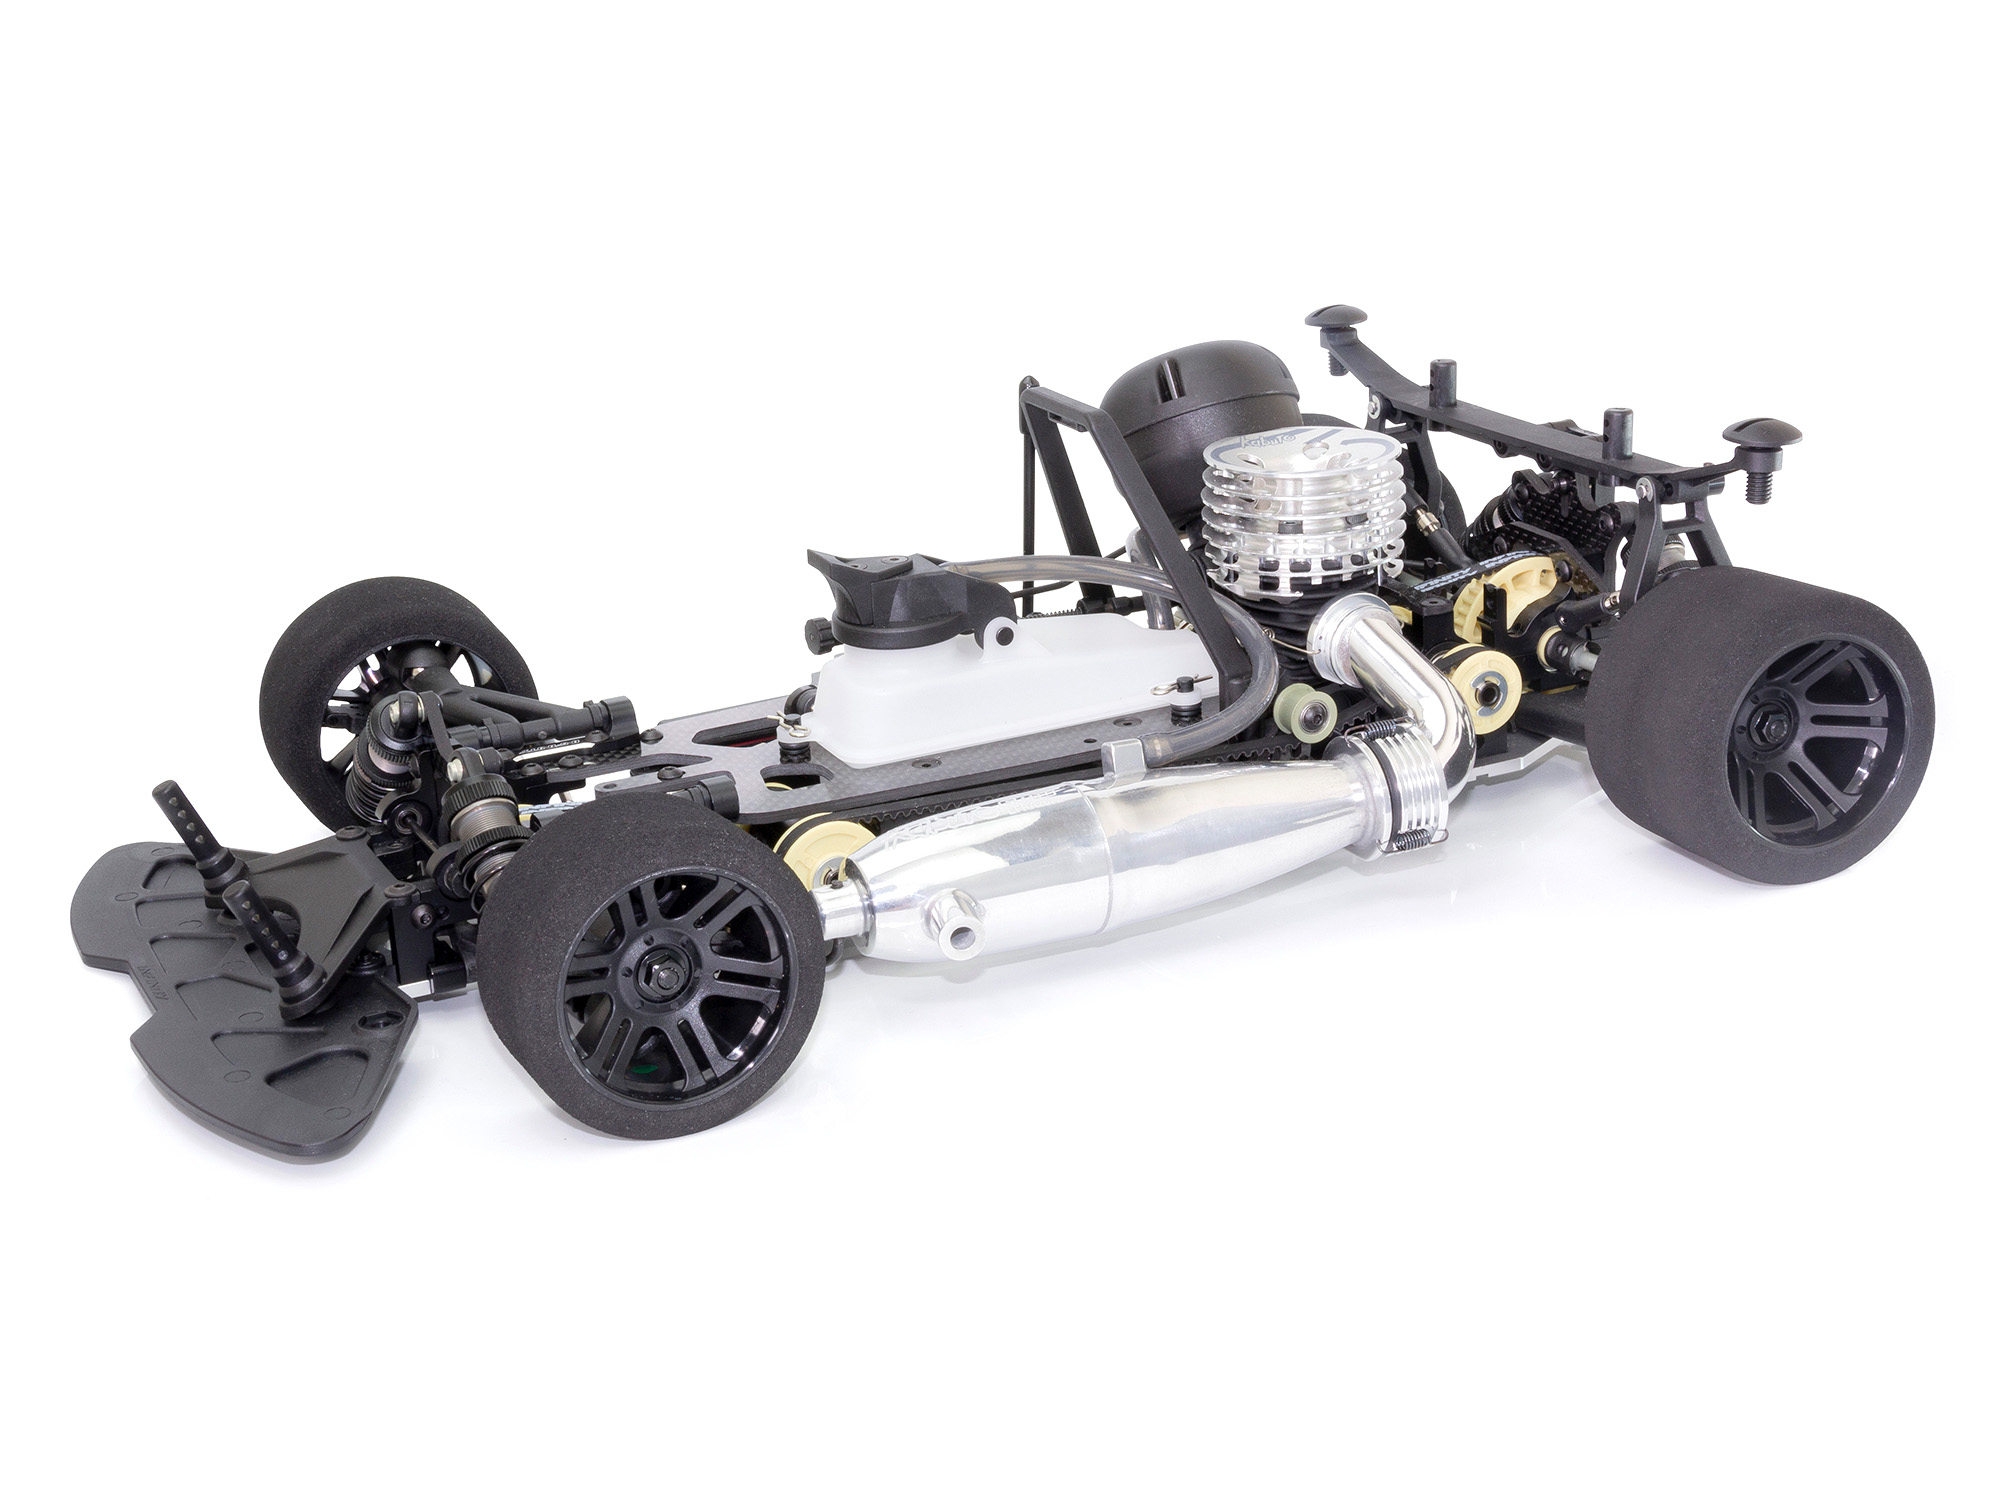 [CM-00008] IF15 1/10 GP WIDE SPEC CHASSIS KIT